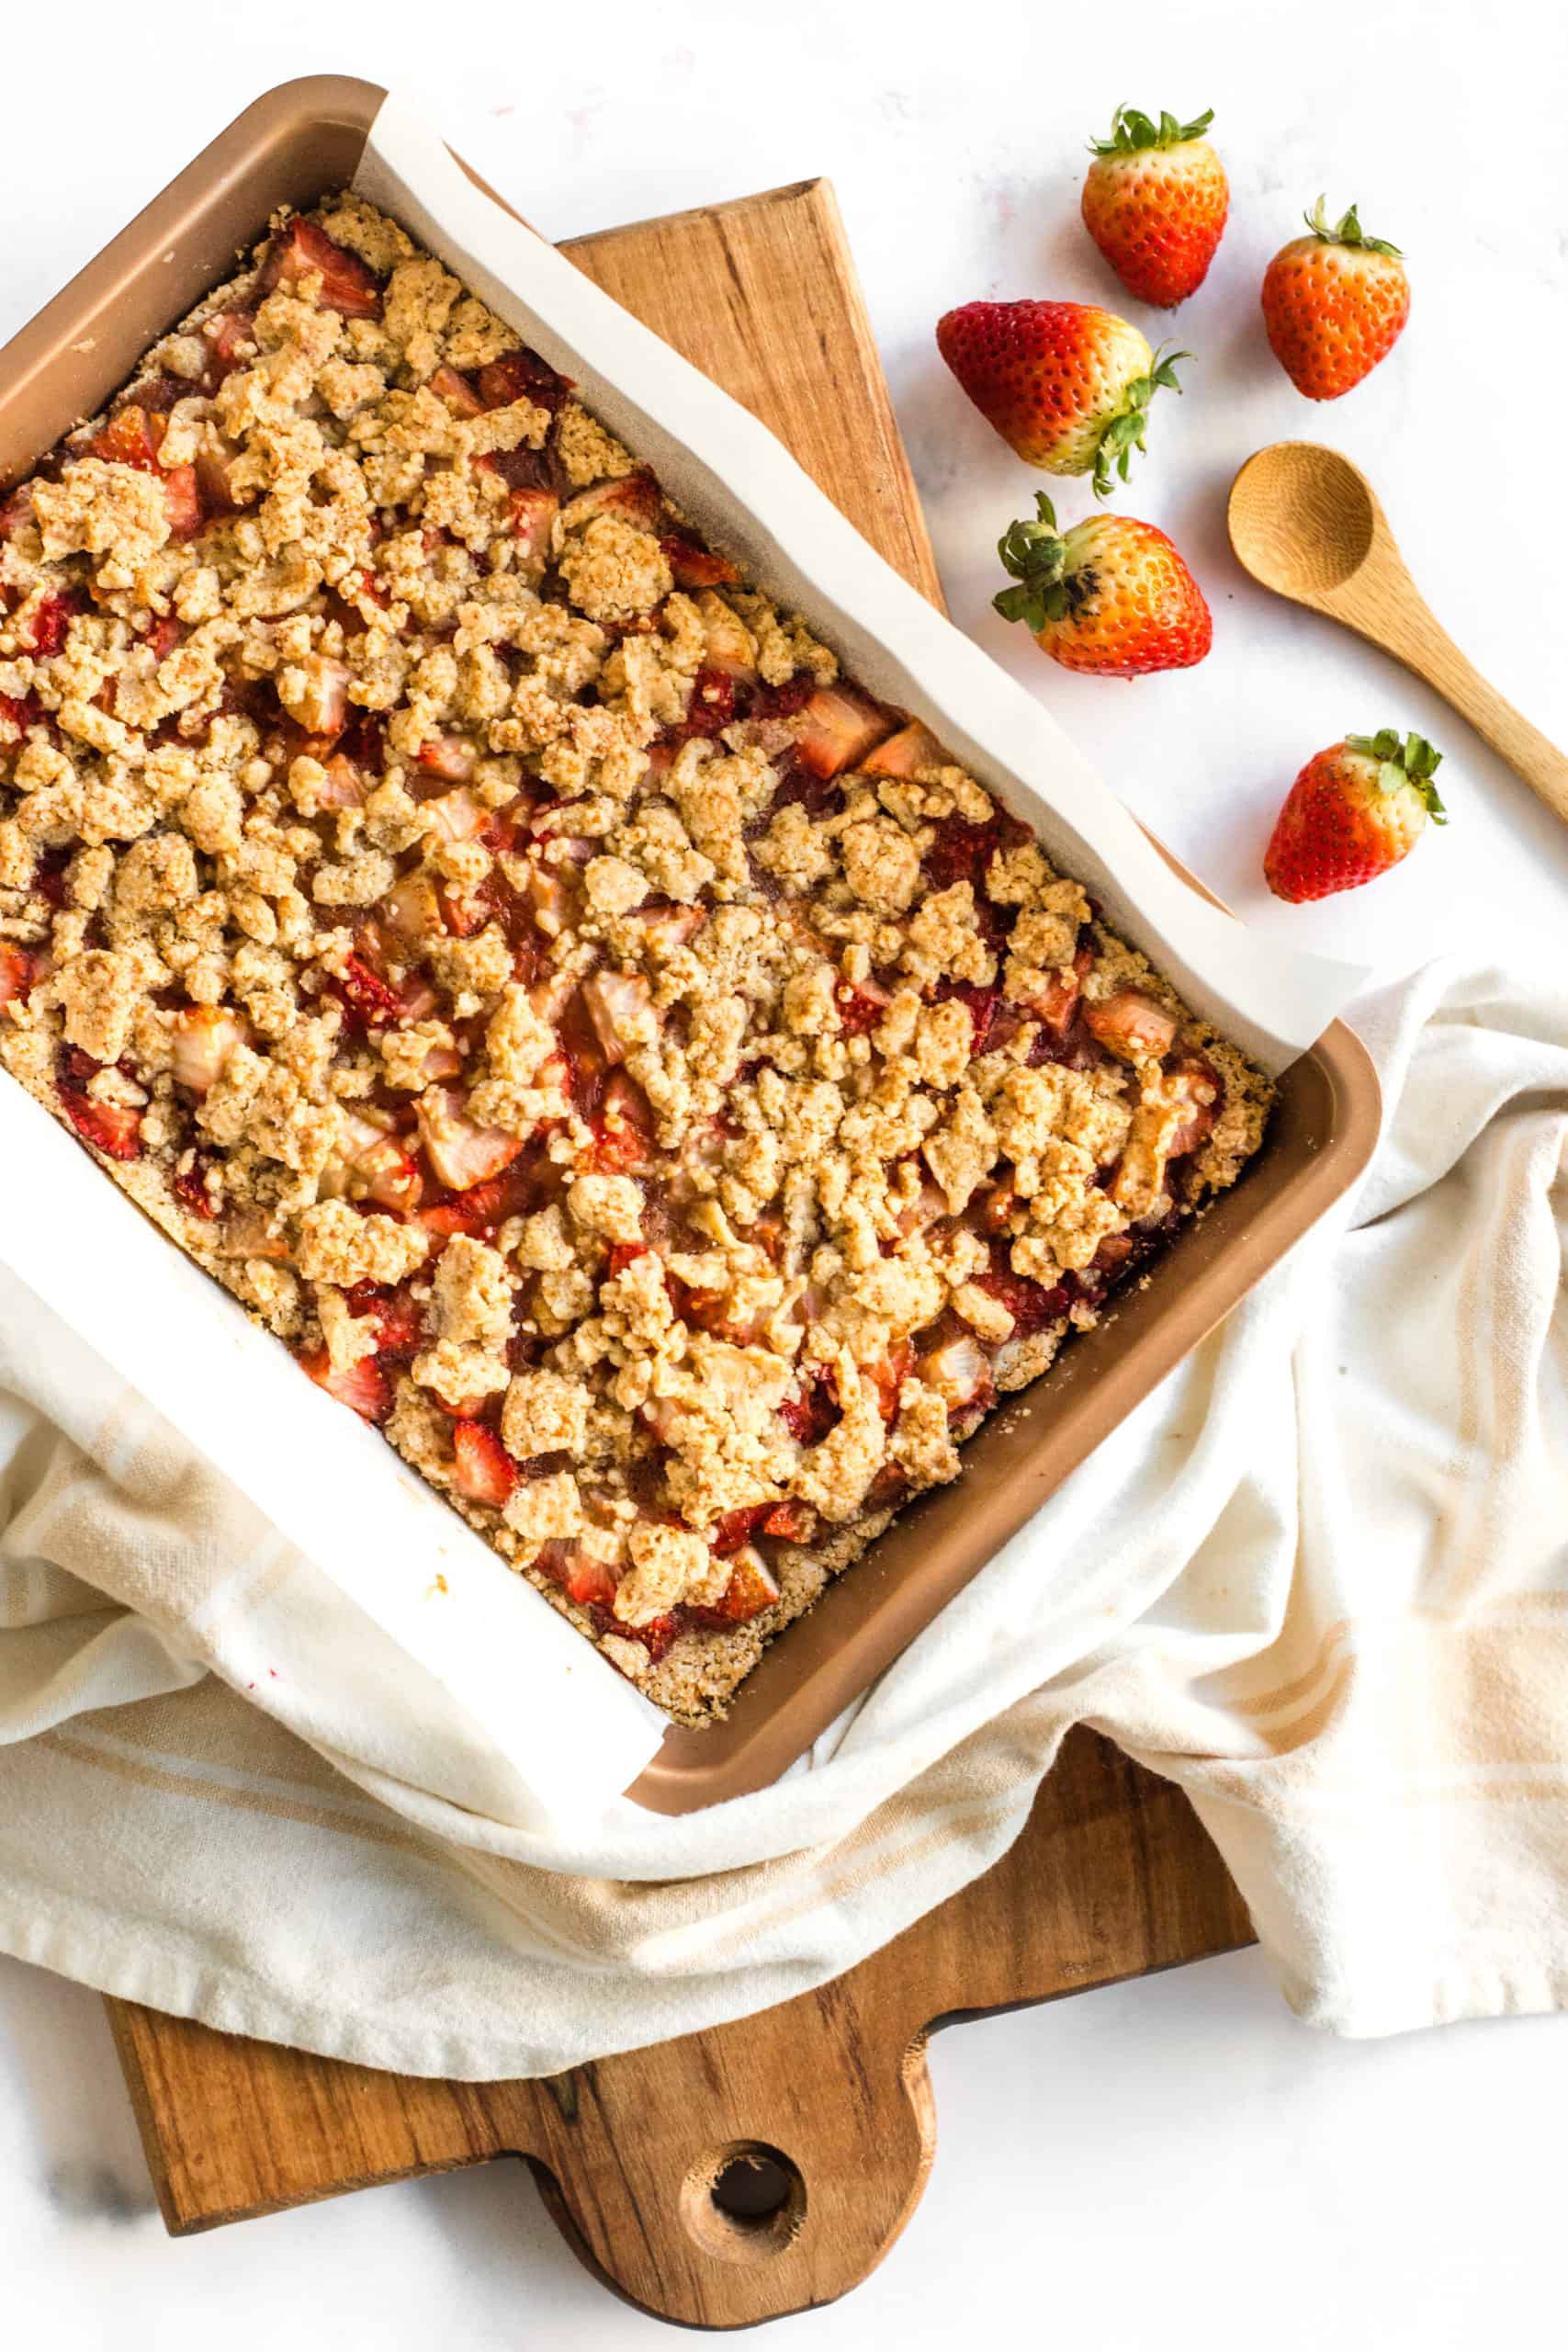 Gluten-free strawberry crumb bars just baked still in a pan and cooling on a wooden board.